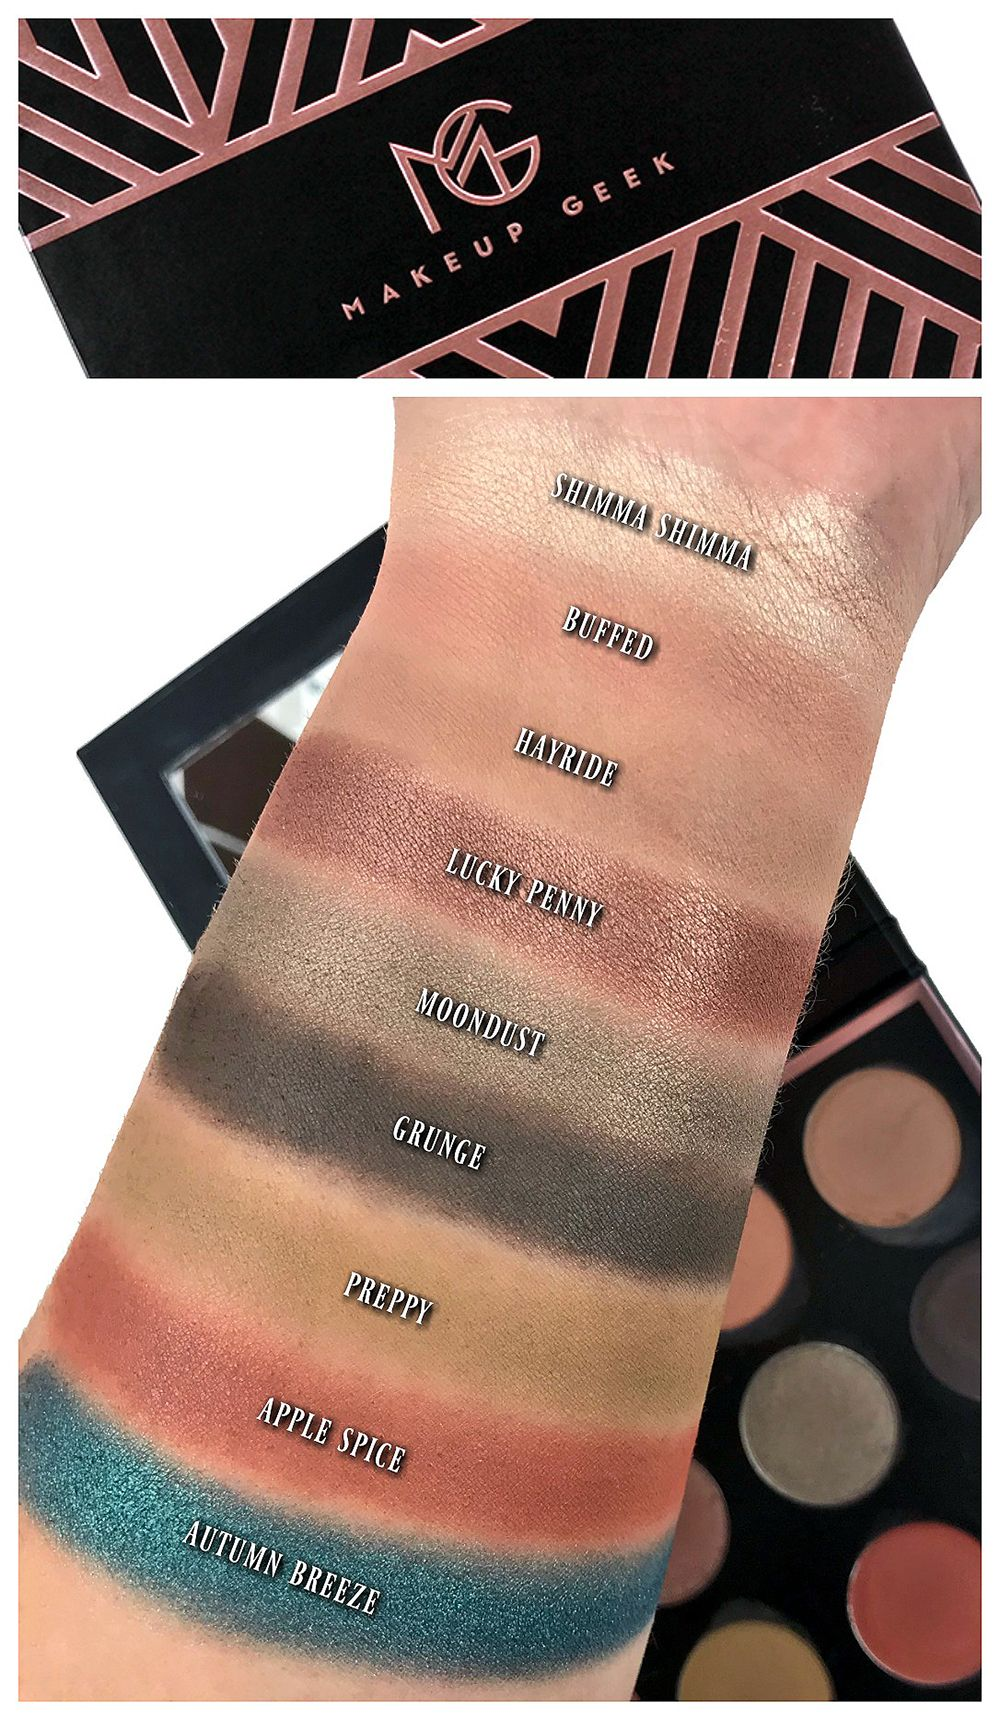 Makeup Geek Eyeshadow Swatches My Own Personal Fall